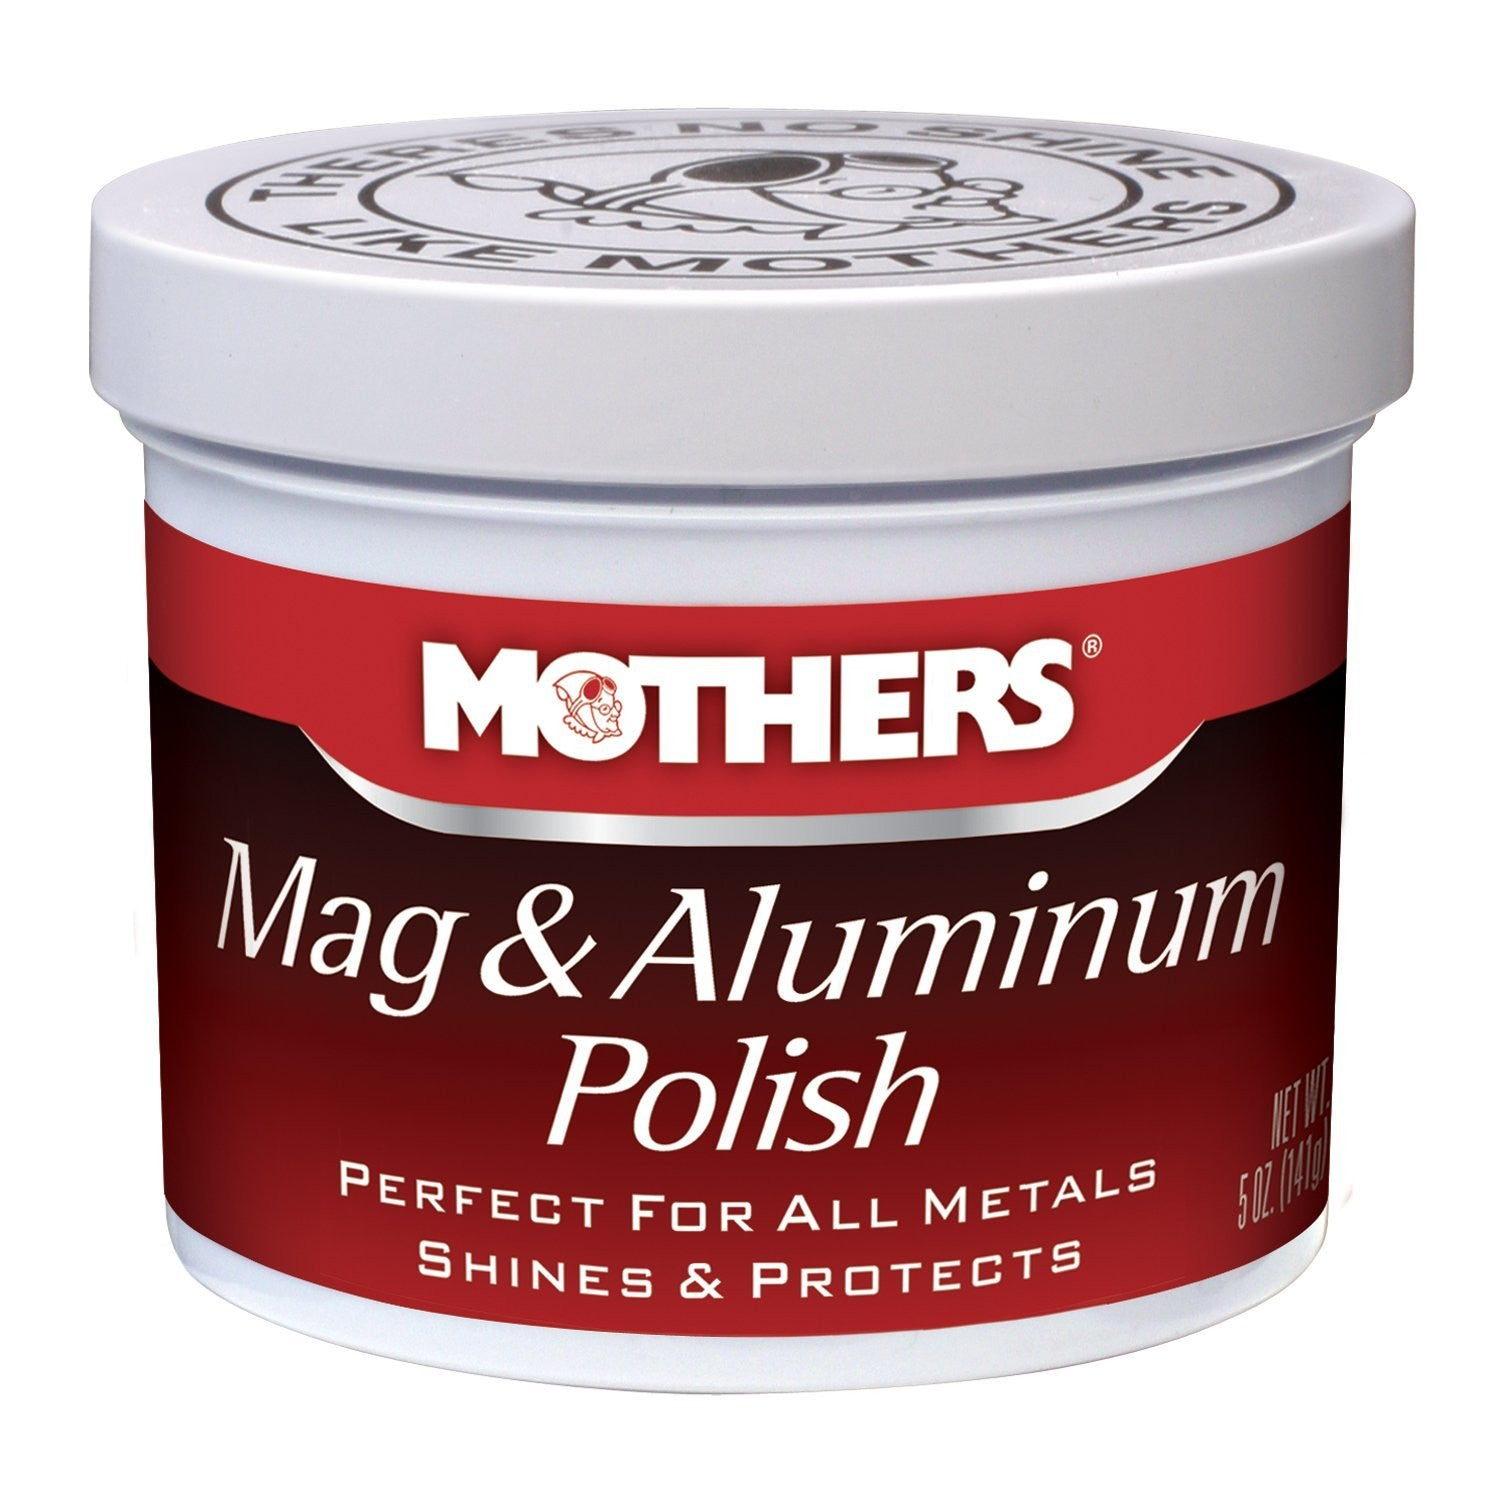 MOTHERS Mag & Aluminum Polish 05 OZ